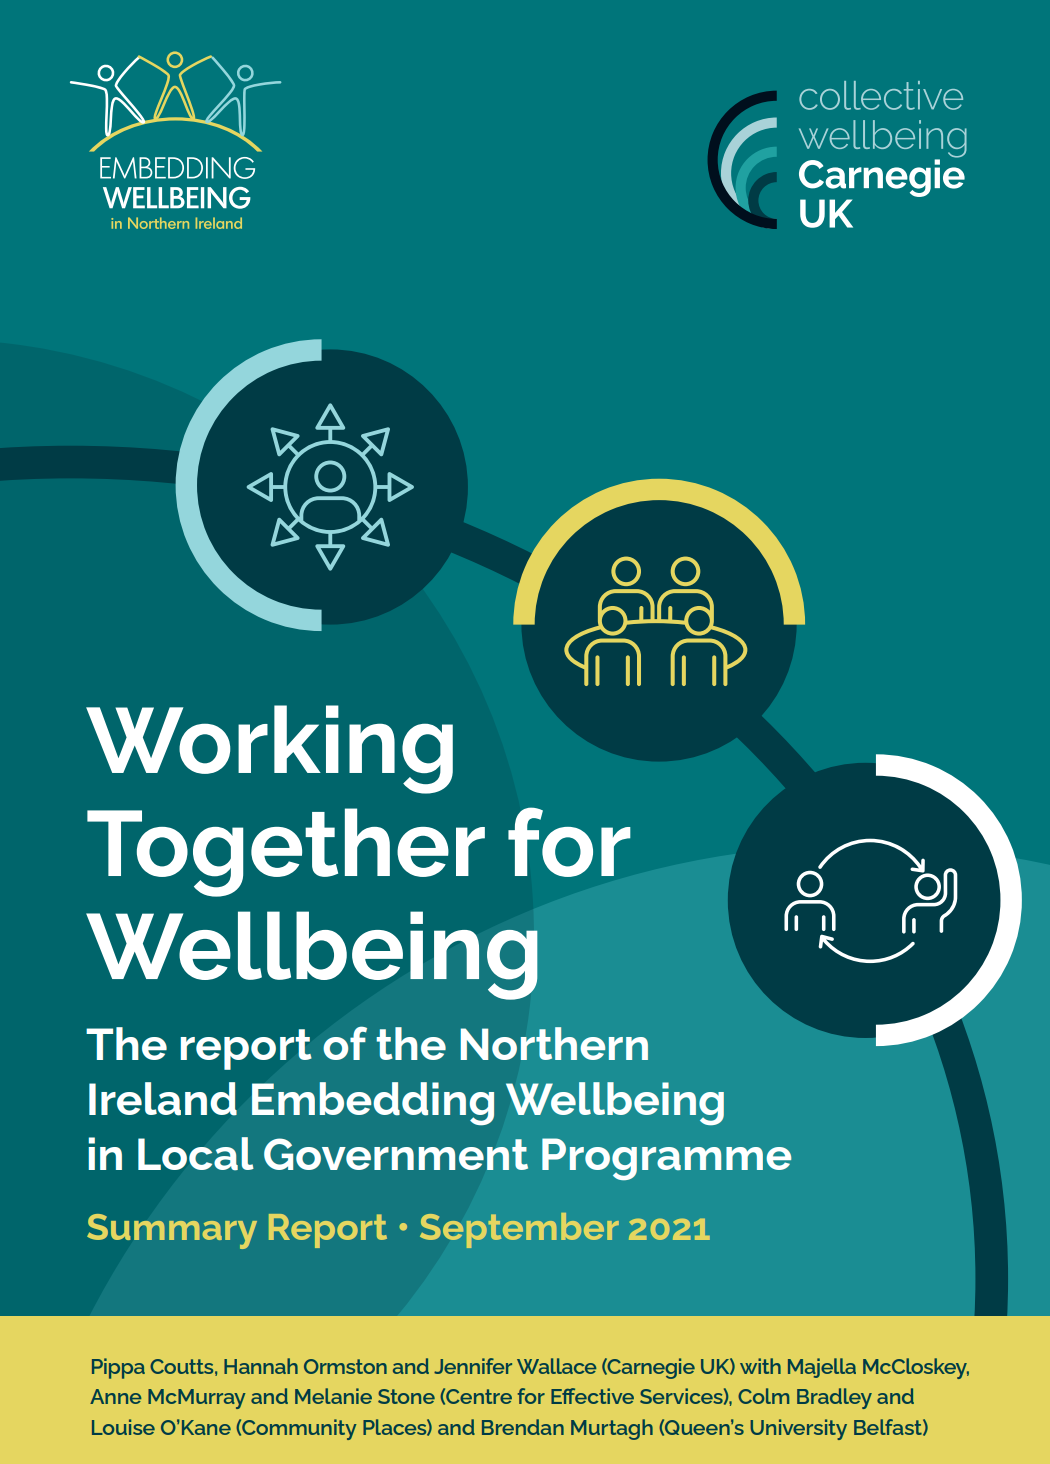 Working Together for Wellbeing: The report of the Northern Ireland Embedding Wellbeing in Local Government Programme (Summary Report)